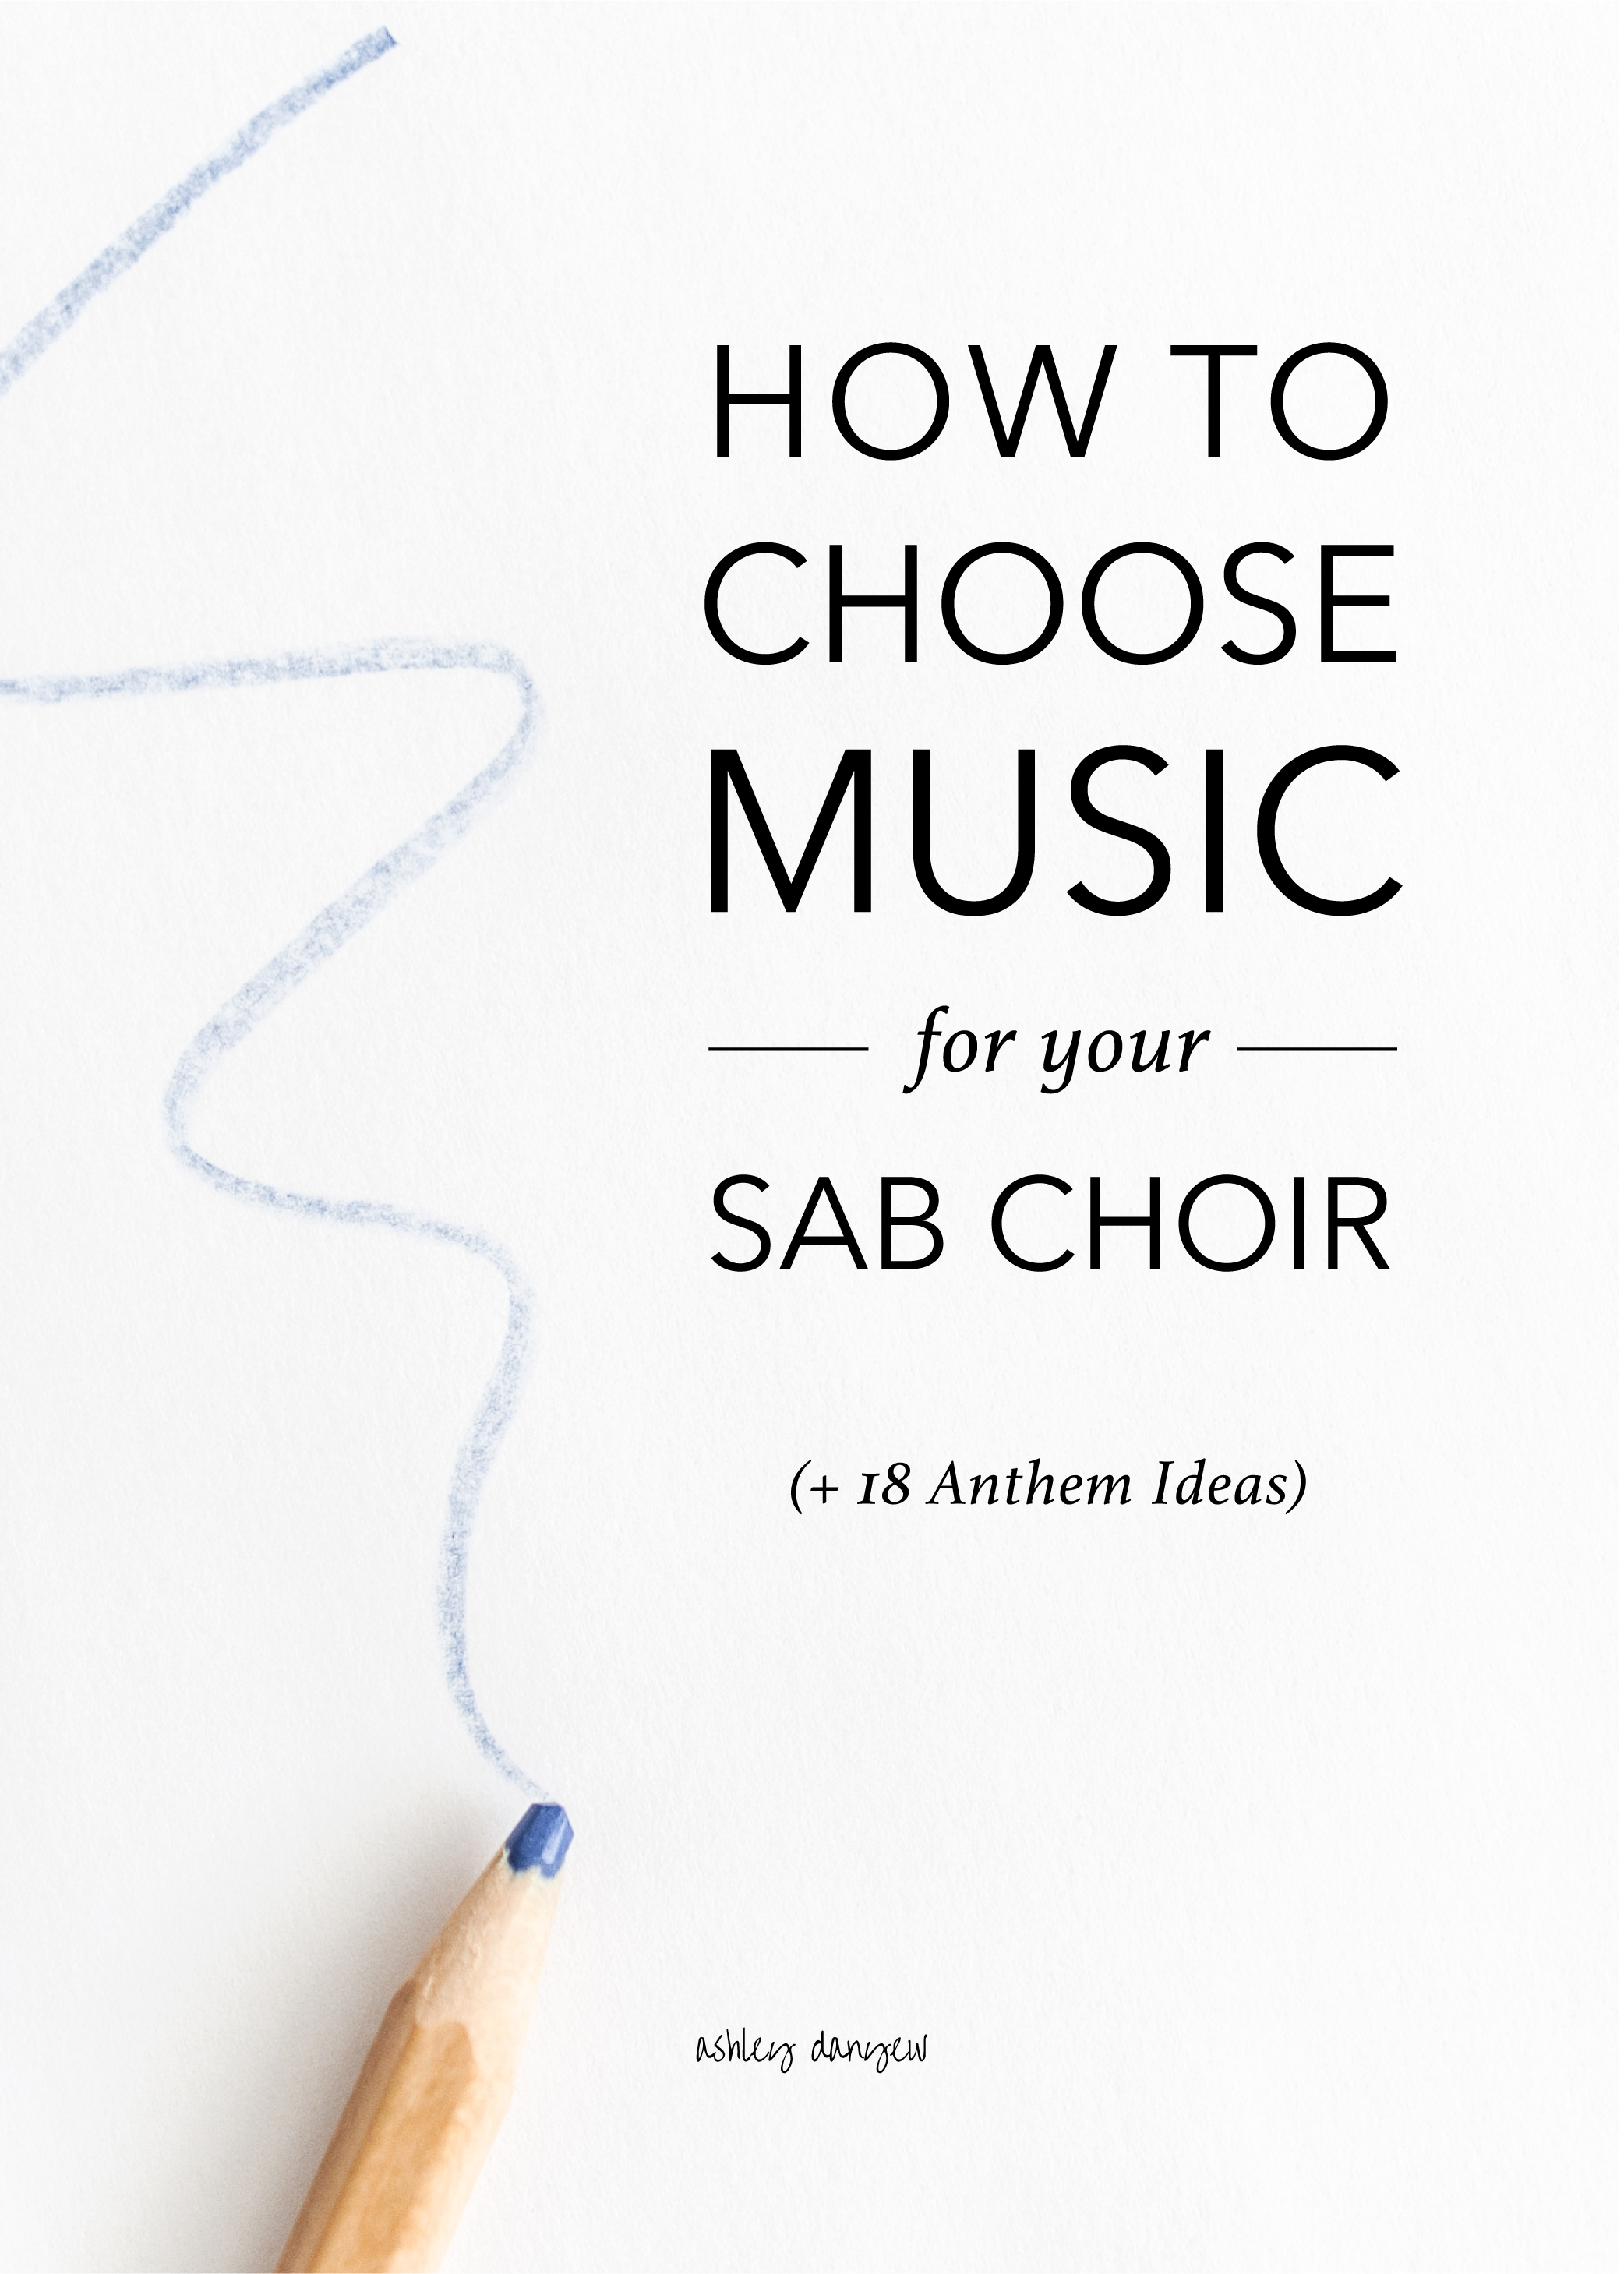 How to Choose Music for Your SAB Choir-33.png